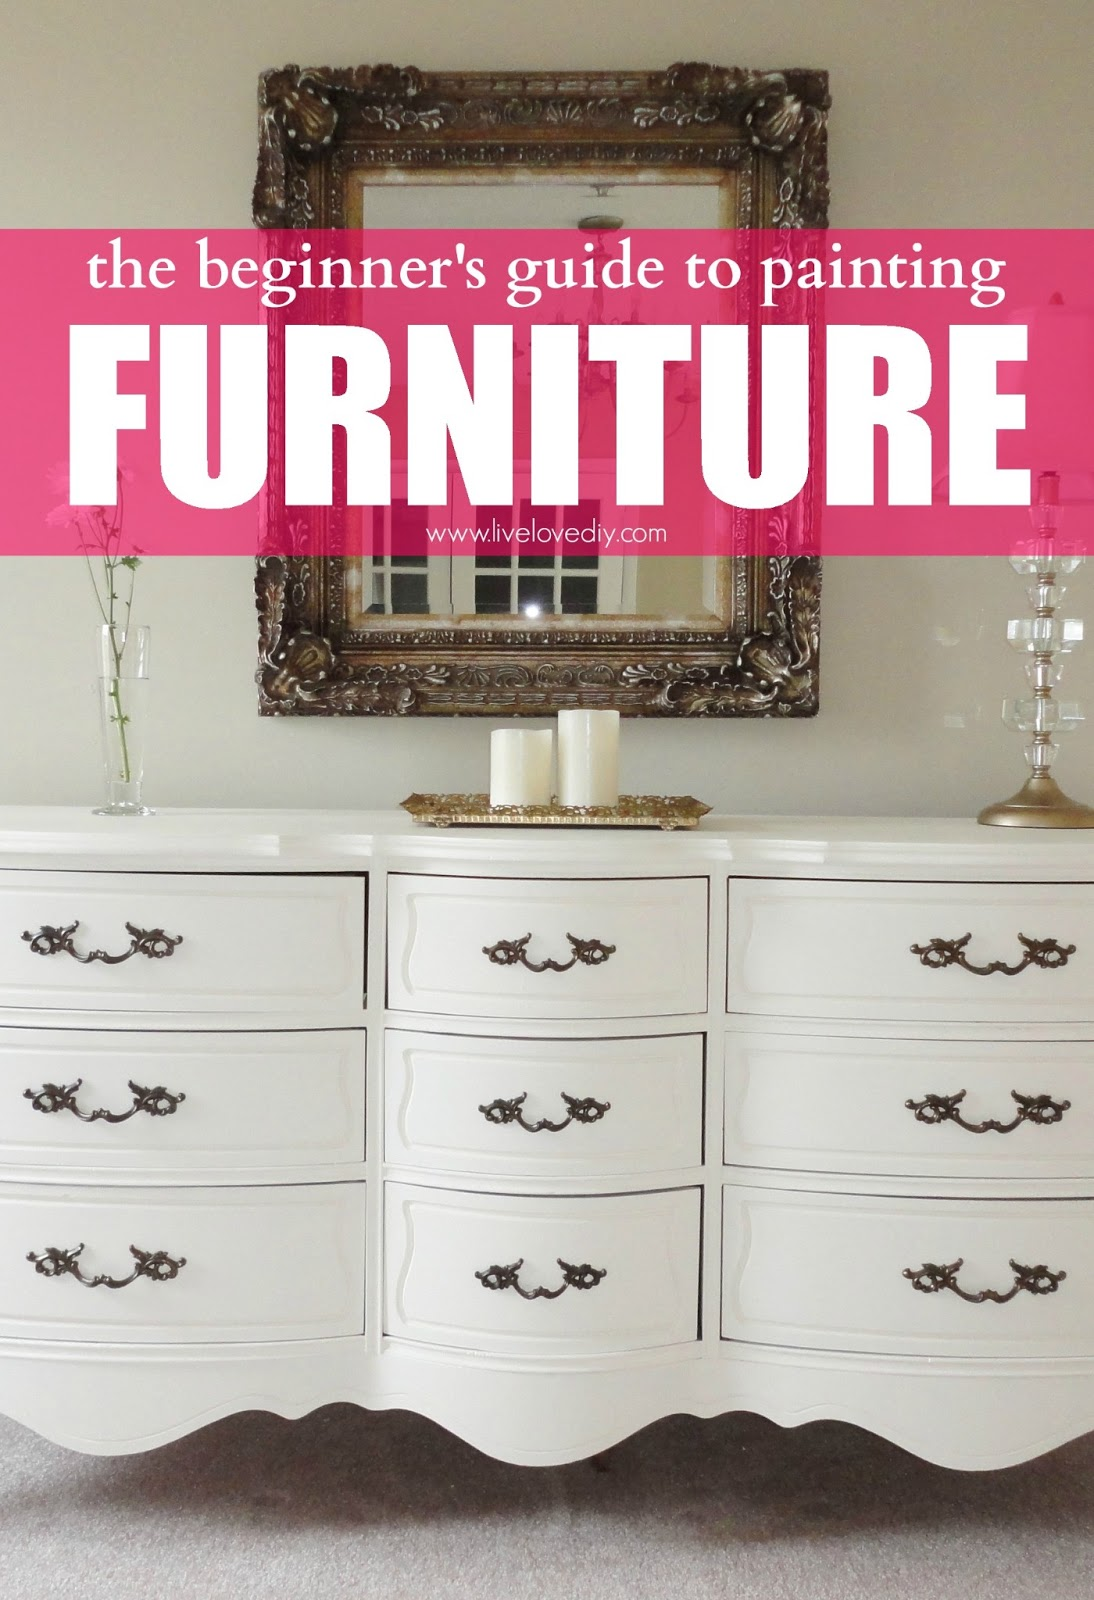 The Beginner s Guide to Painting Furniture. LiveLoveDIY  The Beginner s Guide to Painting Furniture